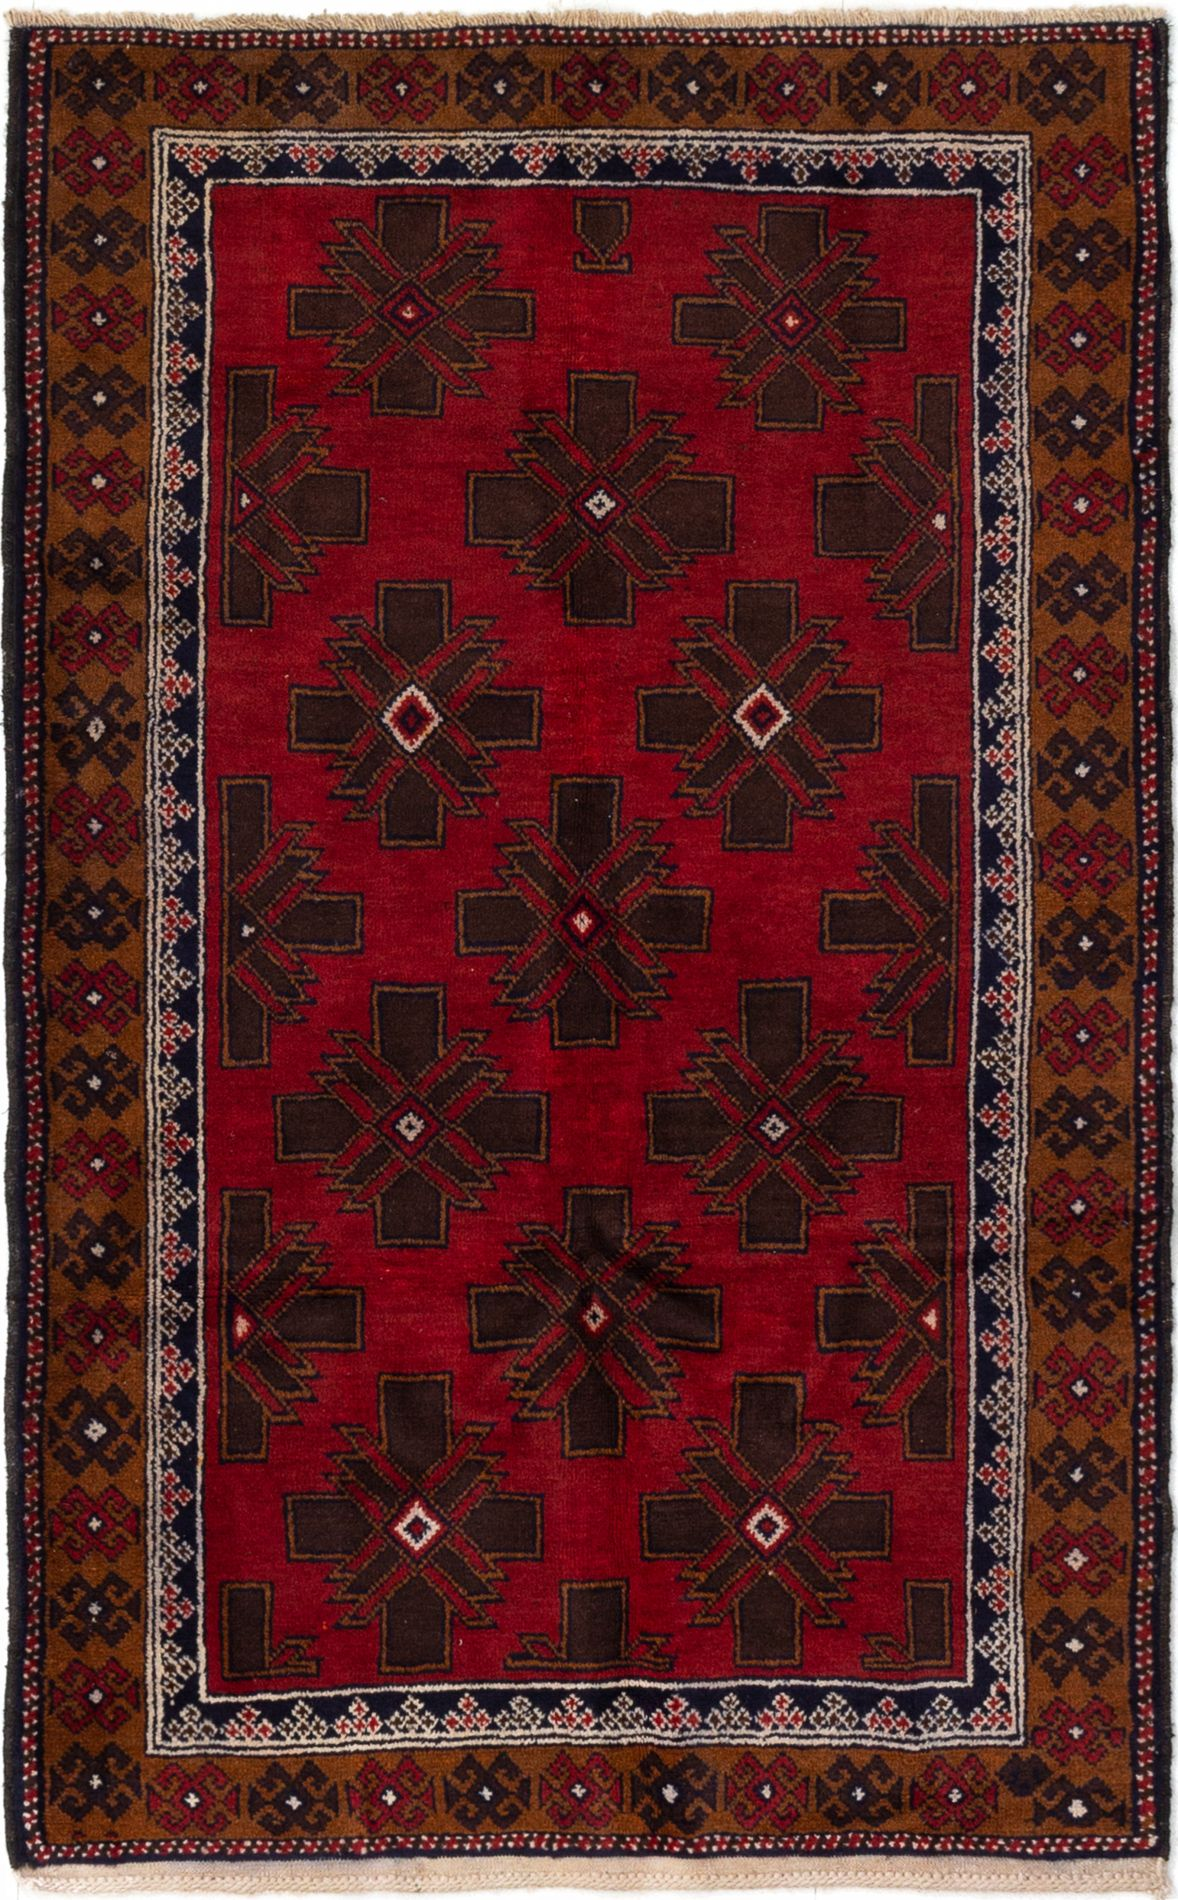 """Hand-knotted Teimani Red Wool Rug 3'8"""" x 5'11"""" Size: 3'8"""" x 5'11"""""""